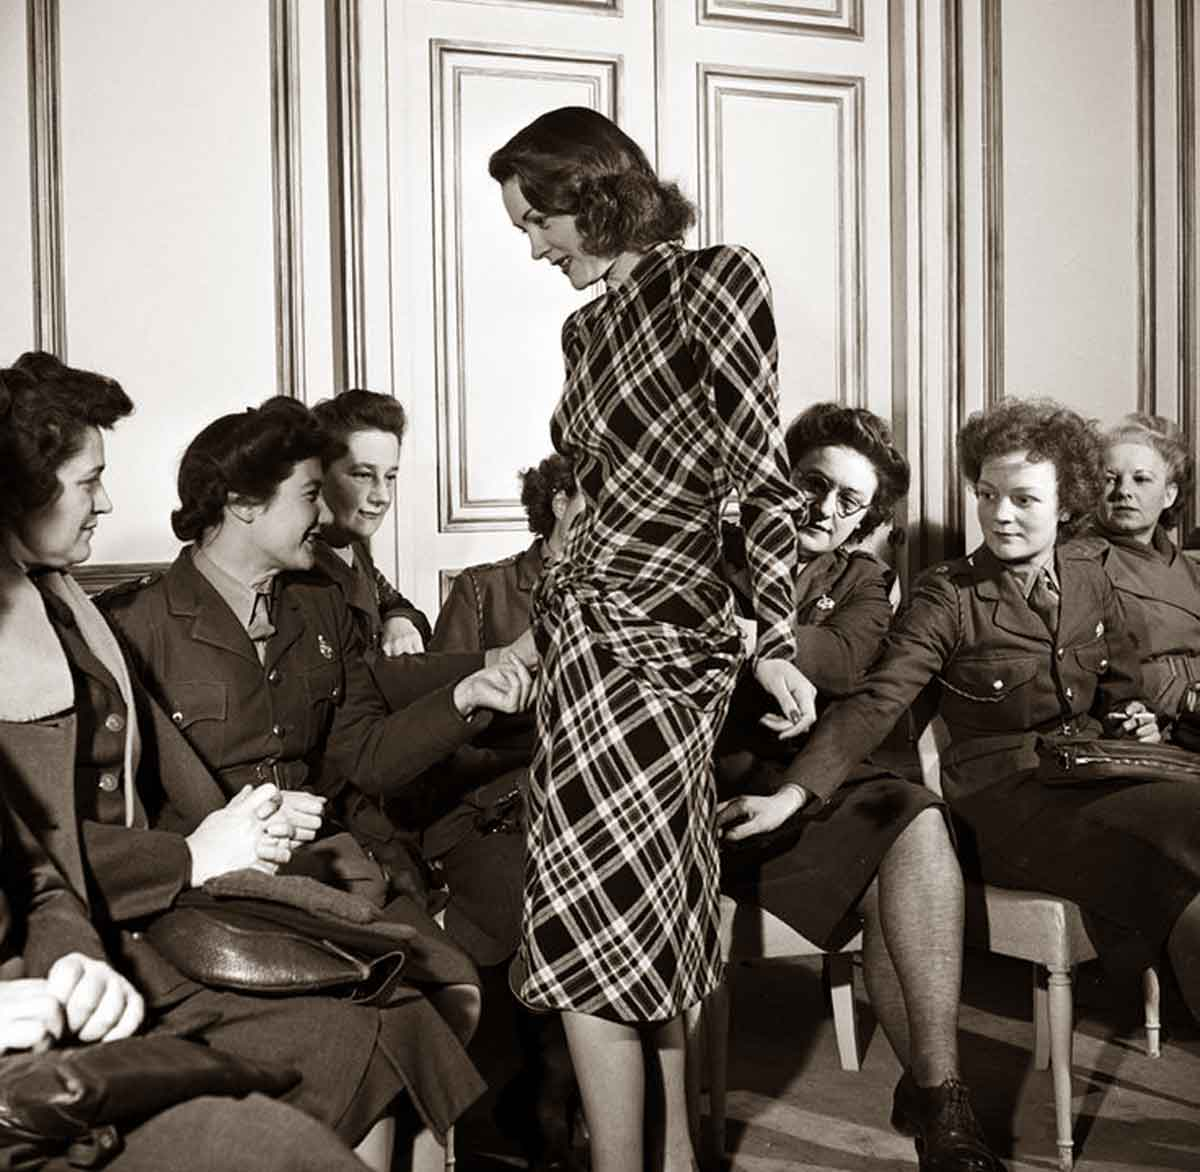 Lee-Miller---Paris-Fashion-show-in-1944